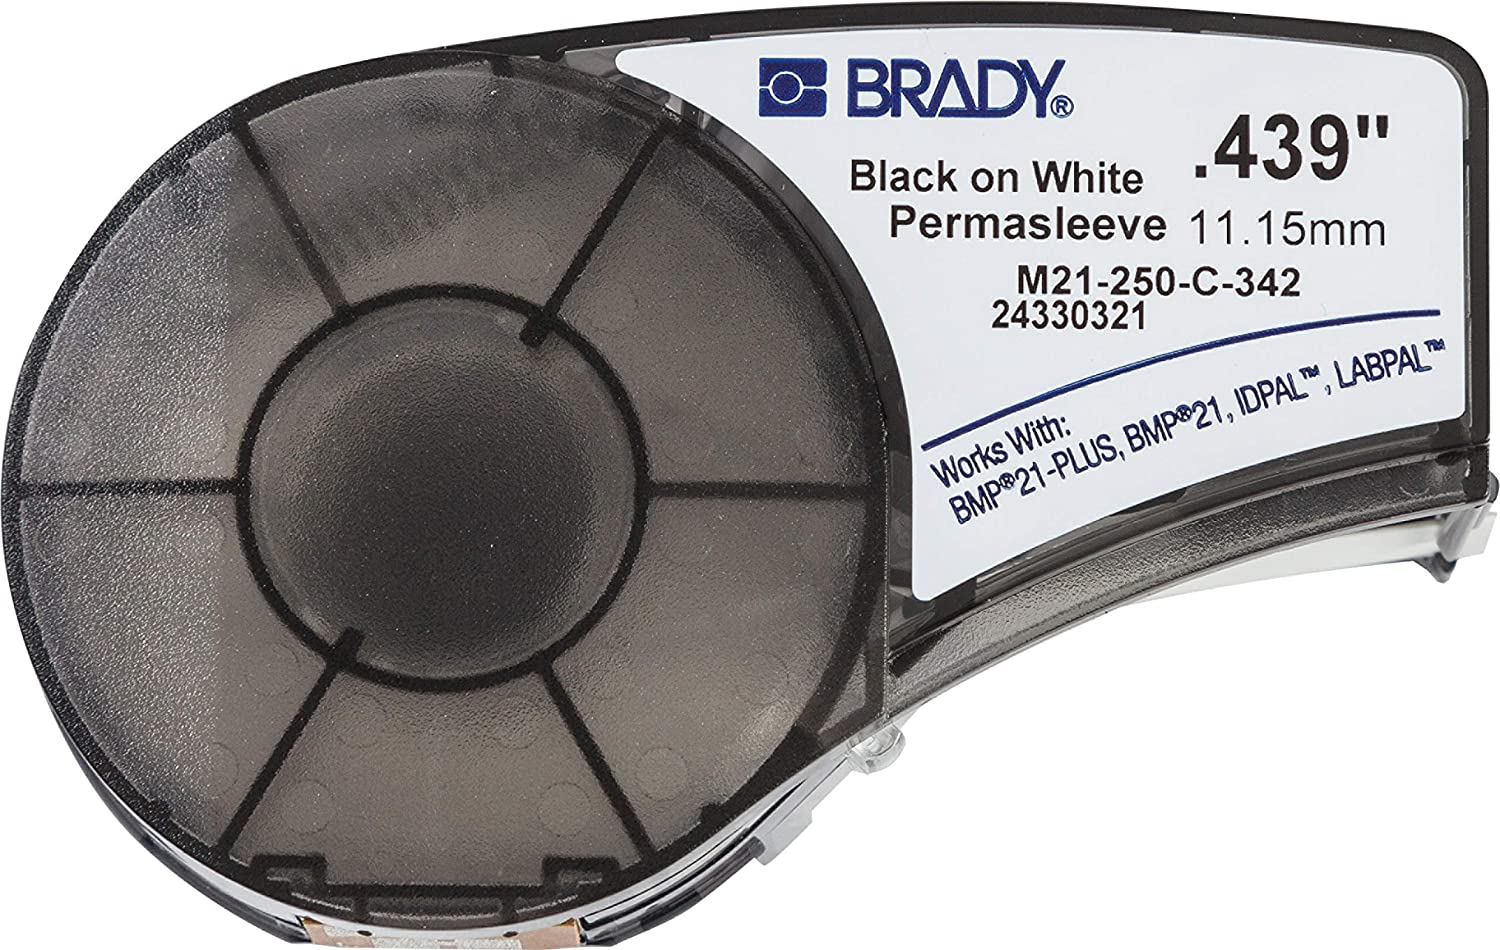 Brady Official (M21-250-C-342) PermaSleeve Heat-Shrink Polyolefin Wire Marking Sleeves, Black on White - Designed for BMP21-PLUS, BMP21, ID PAL and LABPAL Printers - 7' Length, 0.439